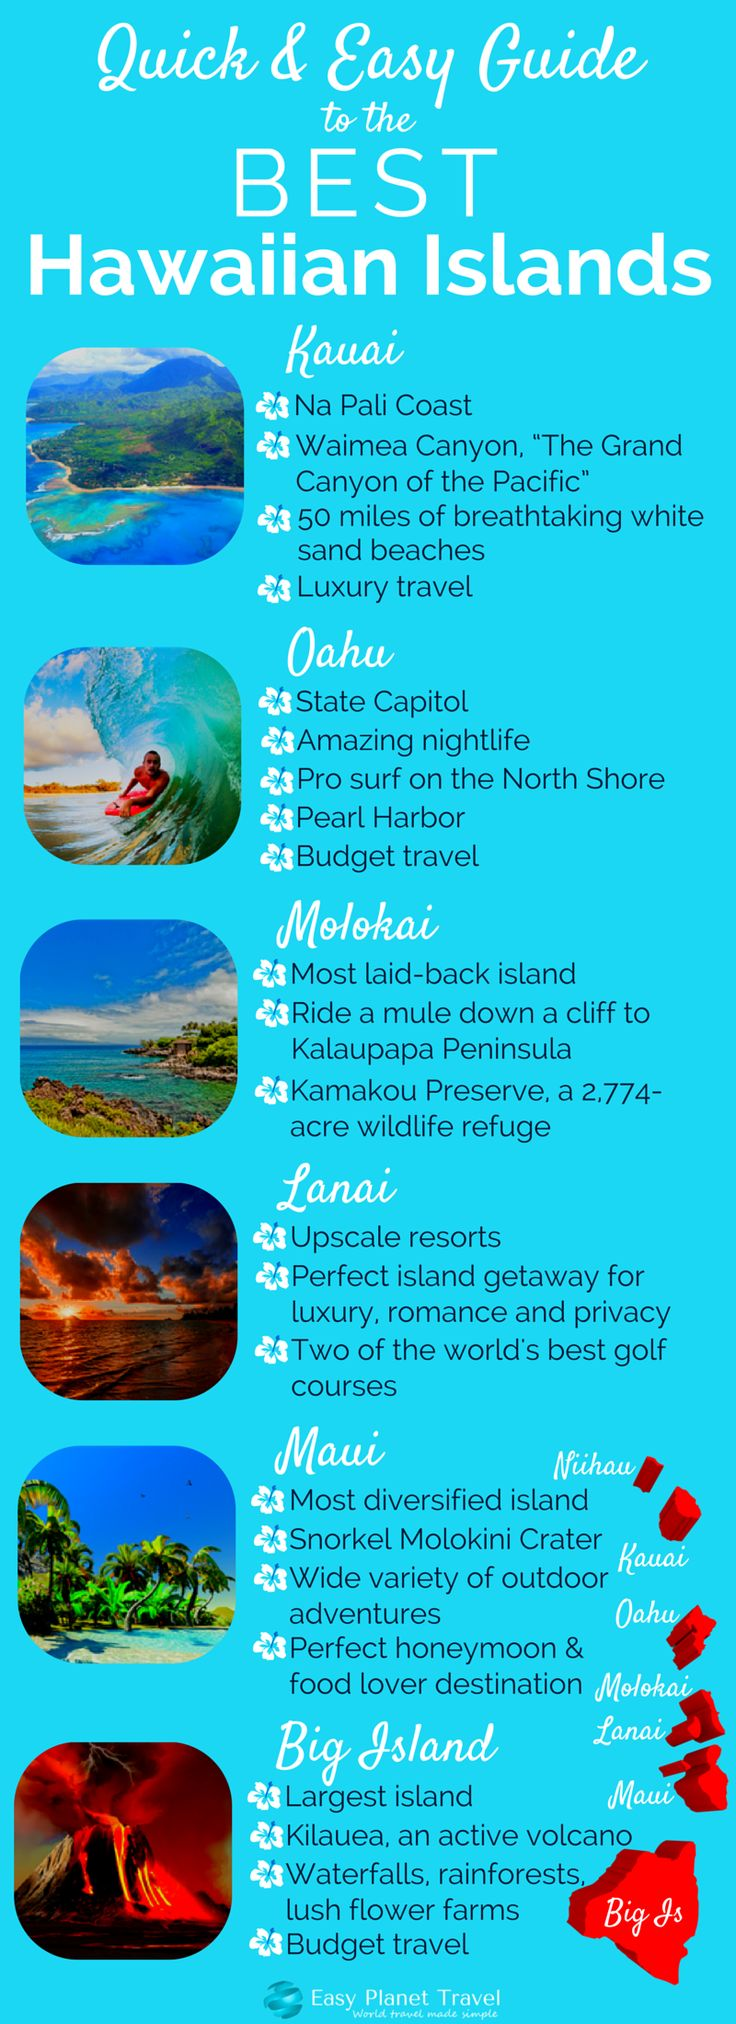 Quick & Easy Guide to the Best Hawaiian Islands | Easy Planet Travel - World travel made simple